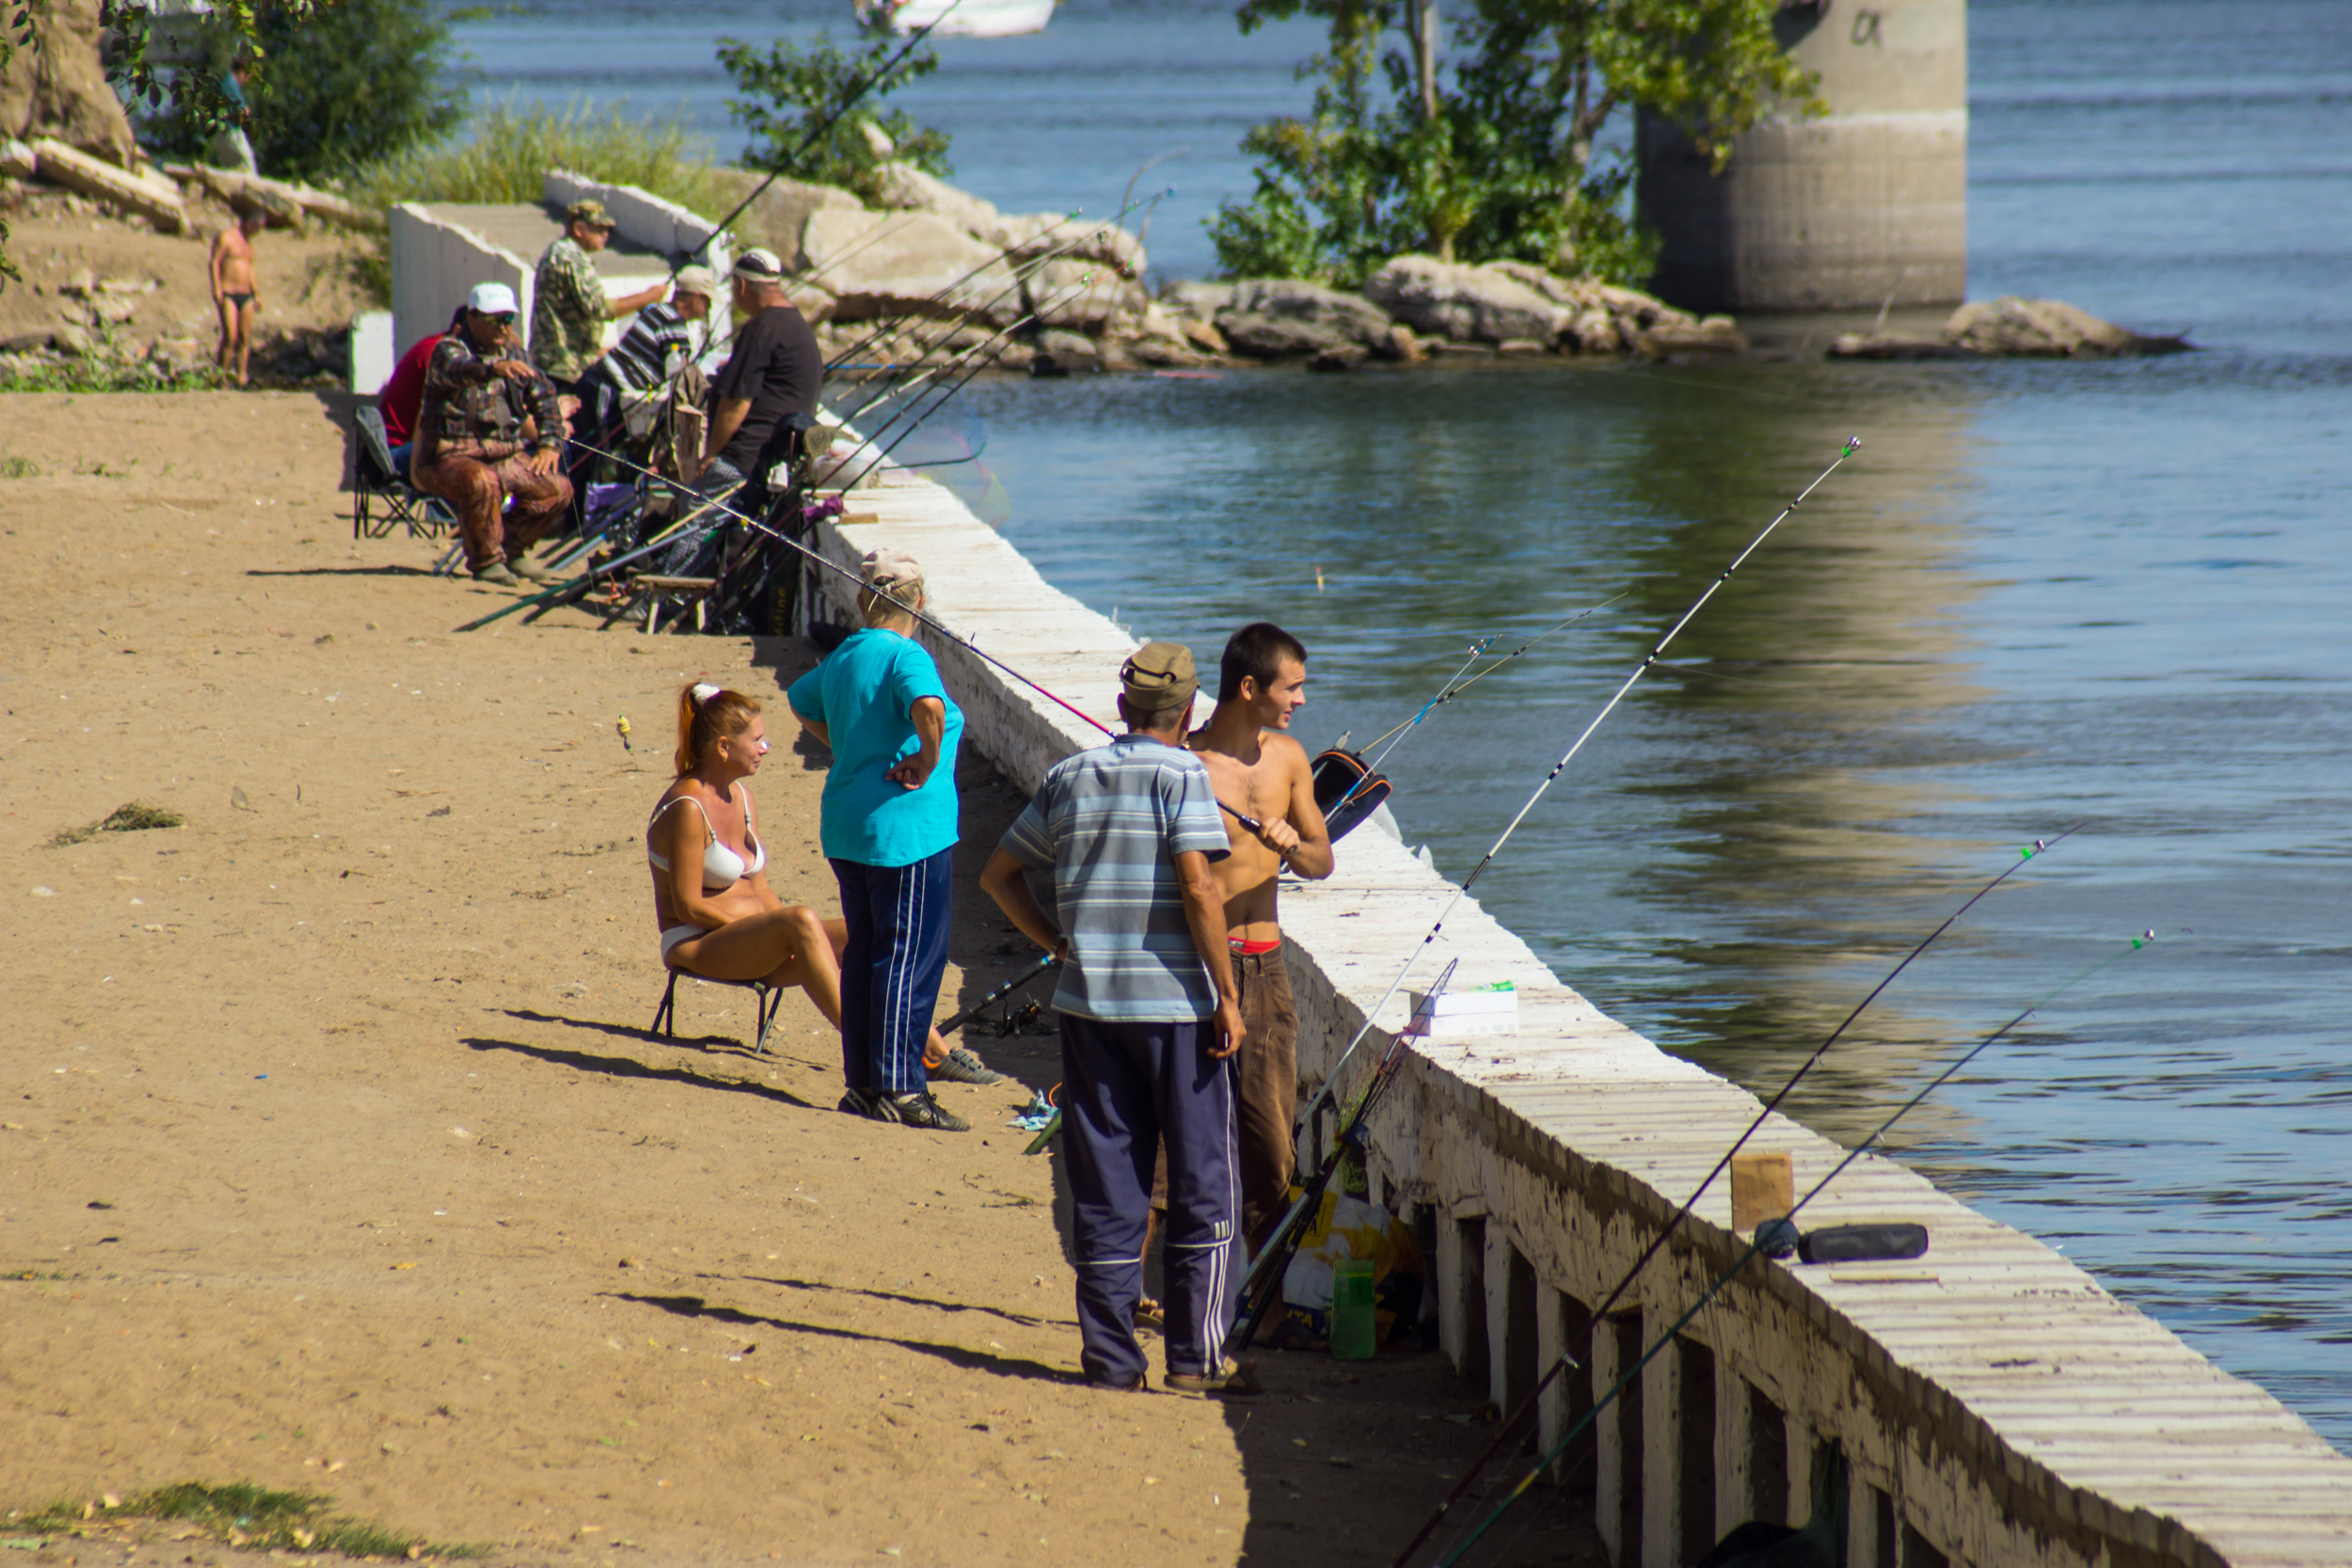 Saratov is famous for fish-fishermen here.